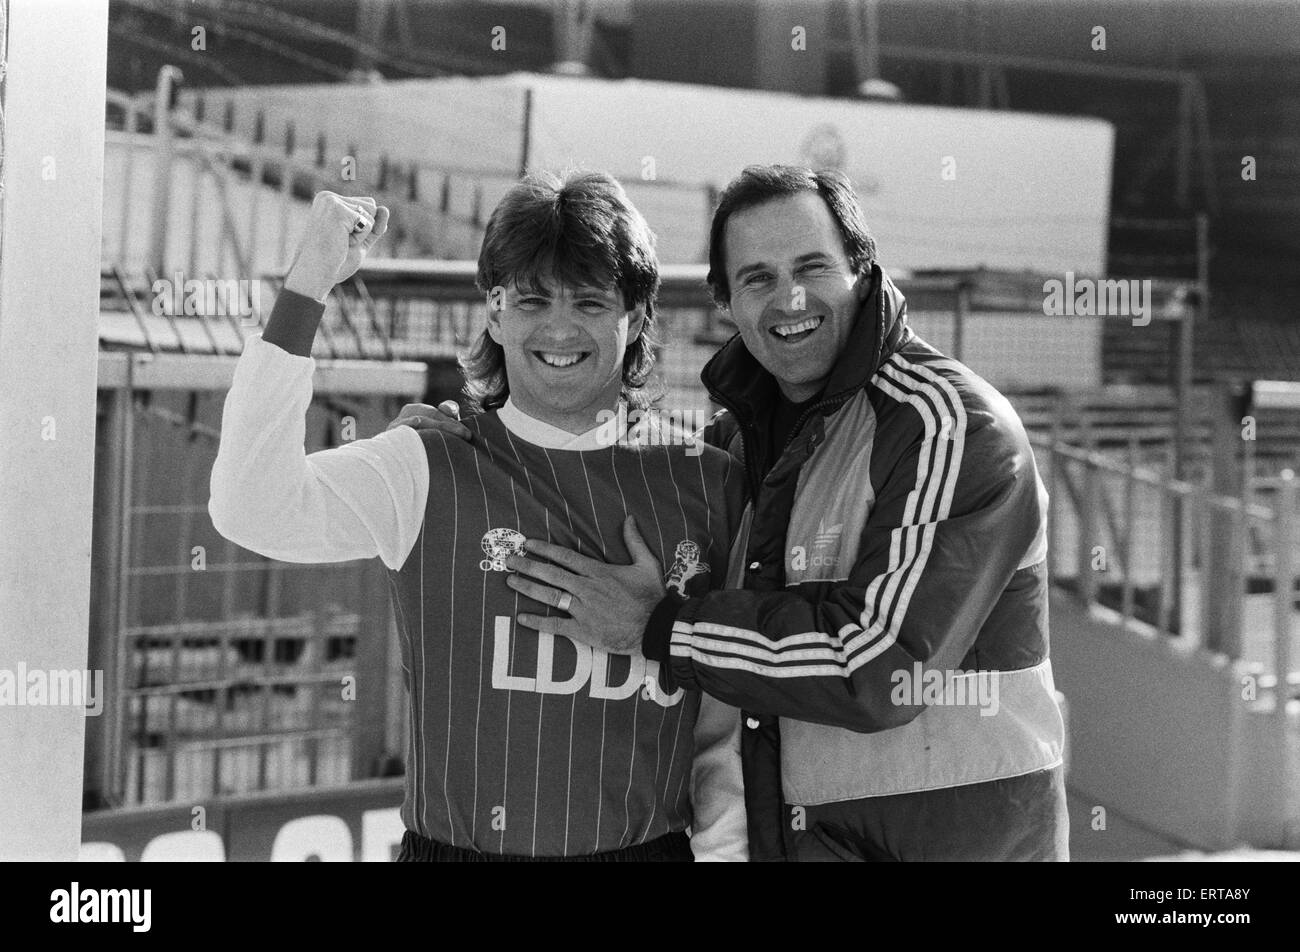 Footballer Steve Lovell. 12th February 1985. - Stock Image